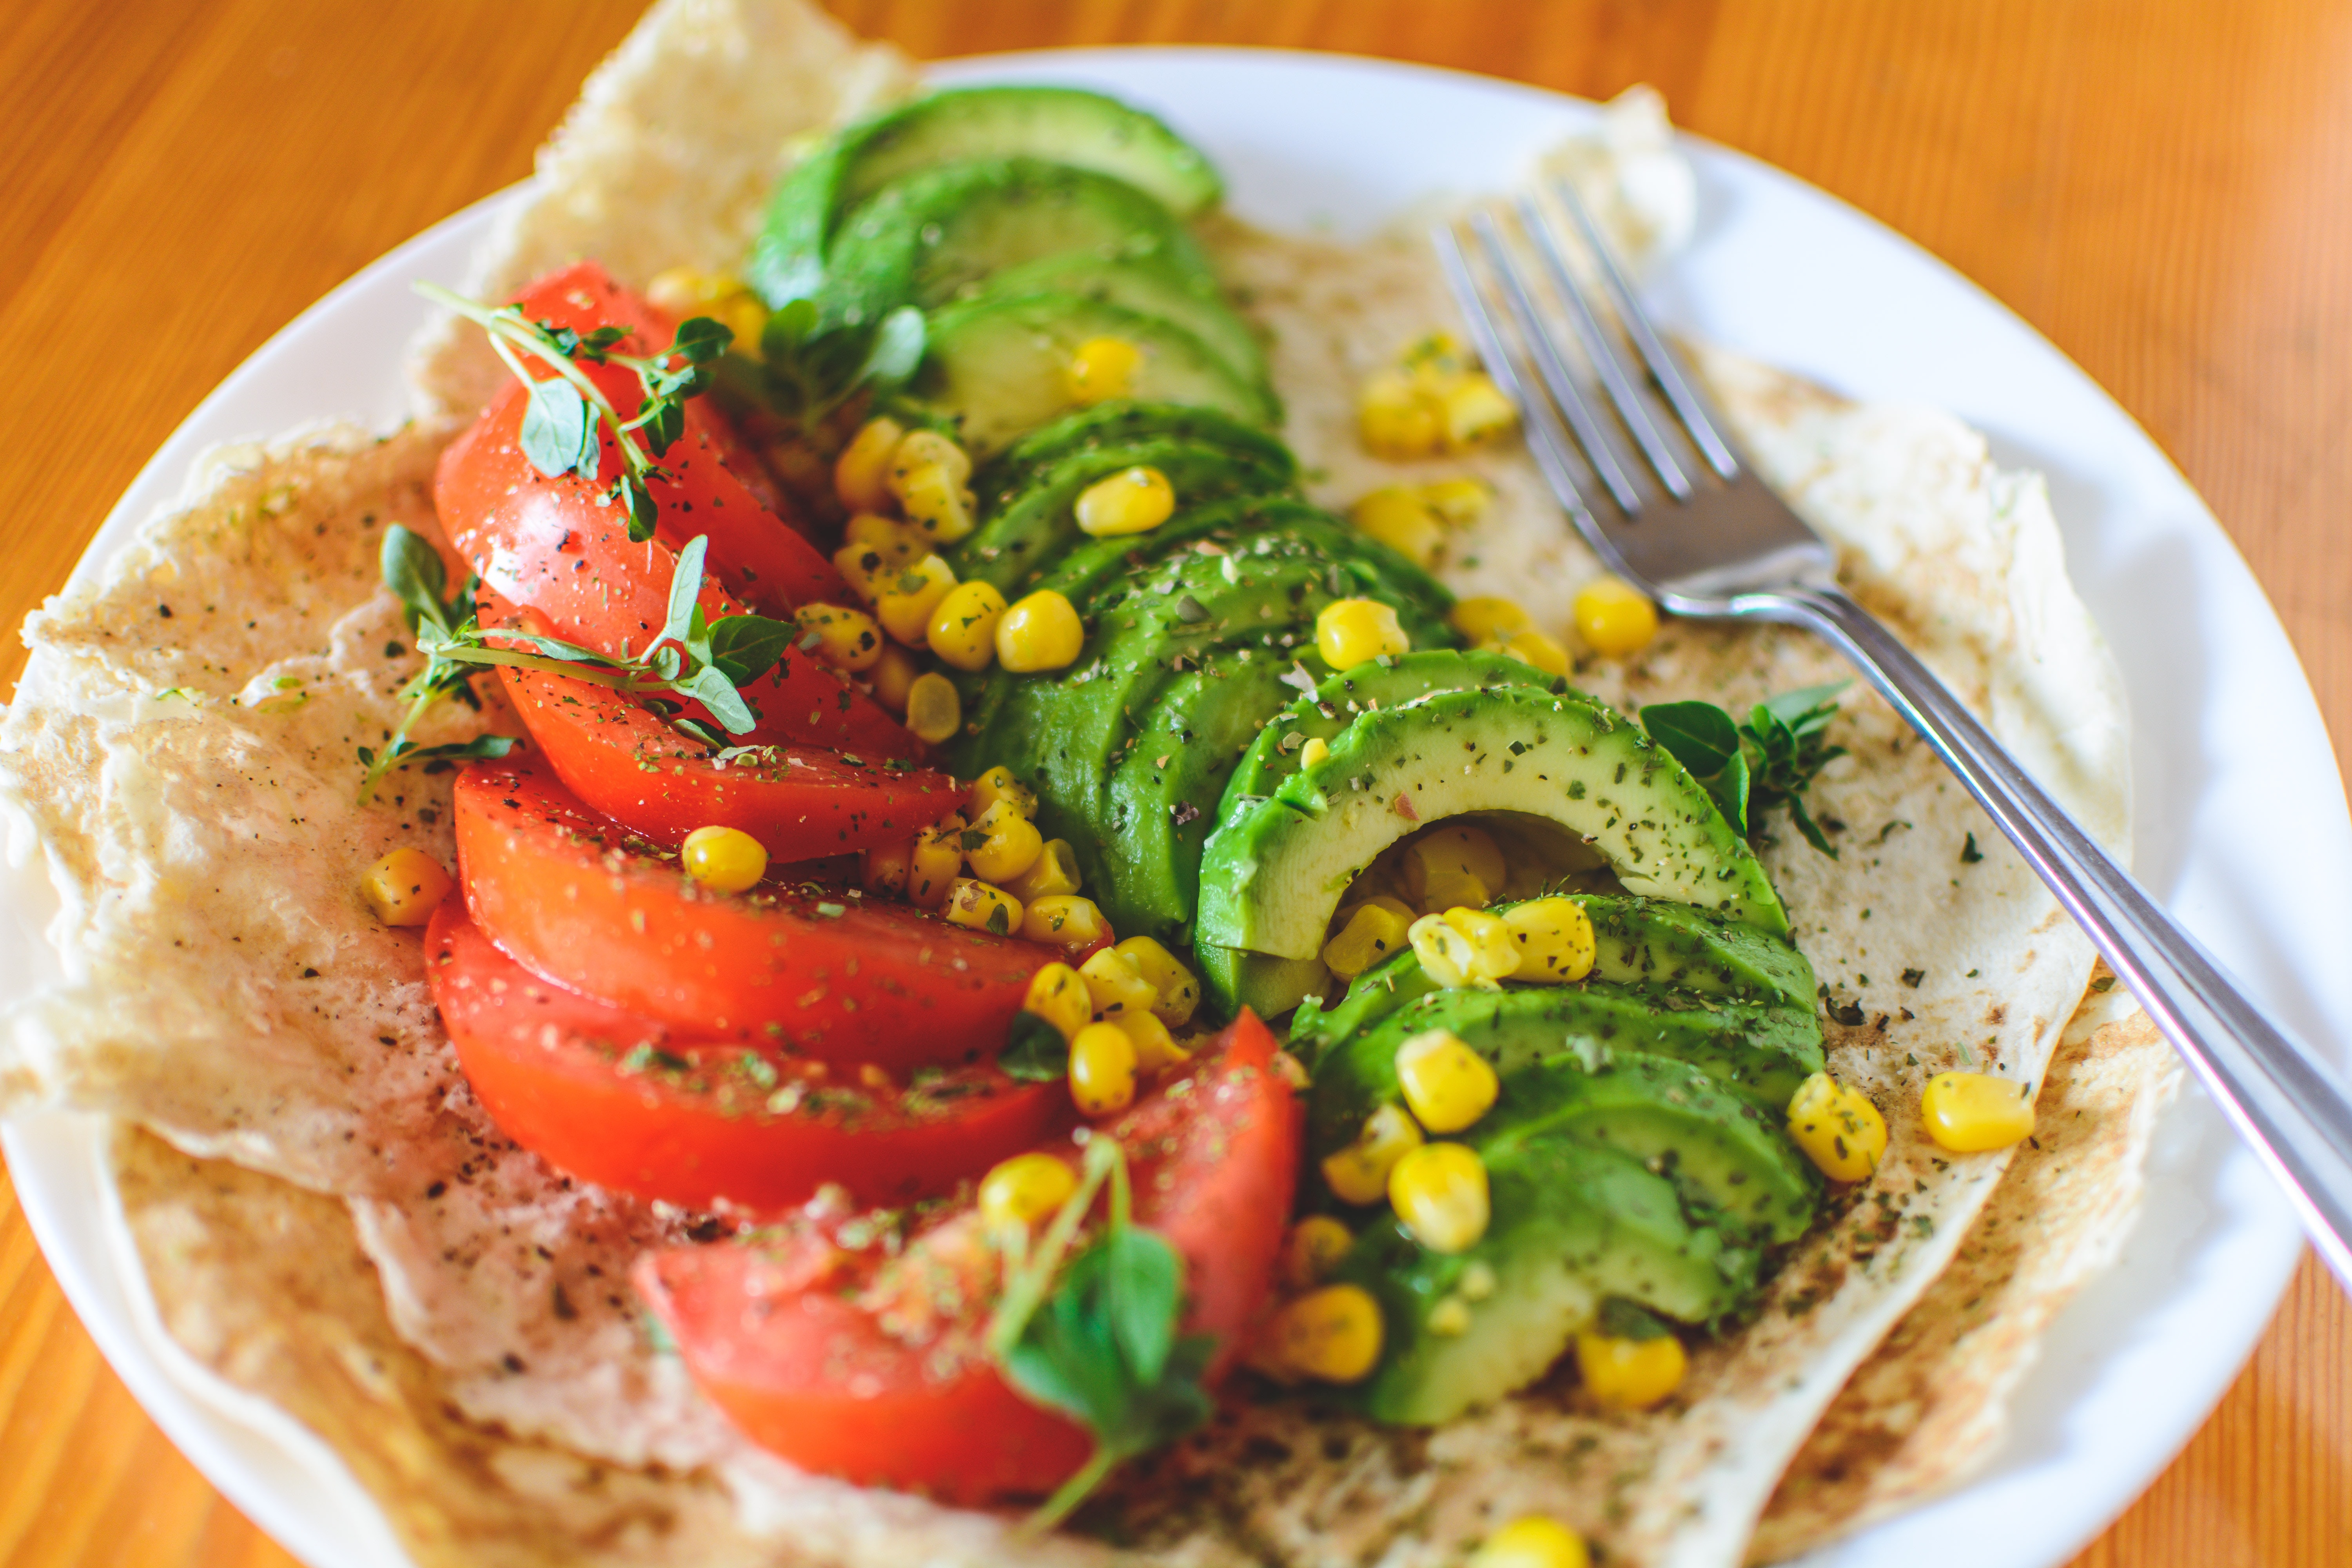 Trendy foods, and of course, avocados.